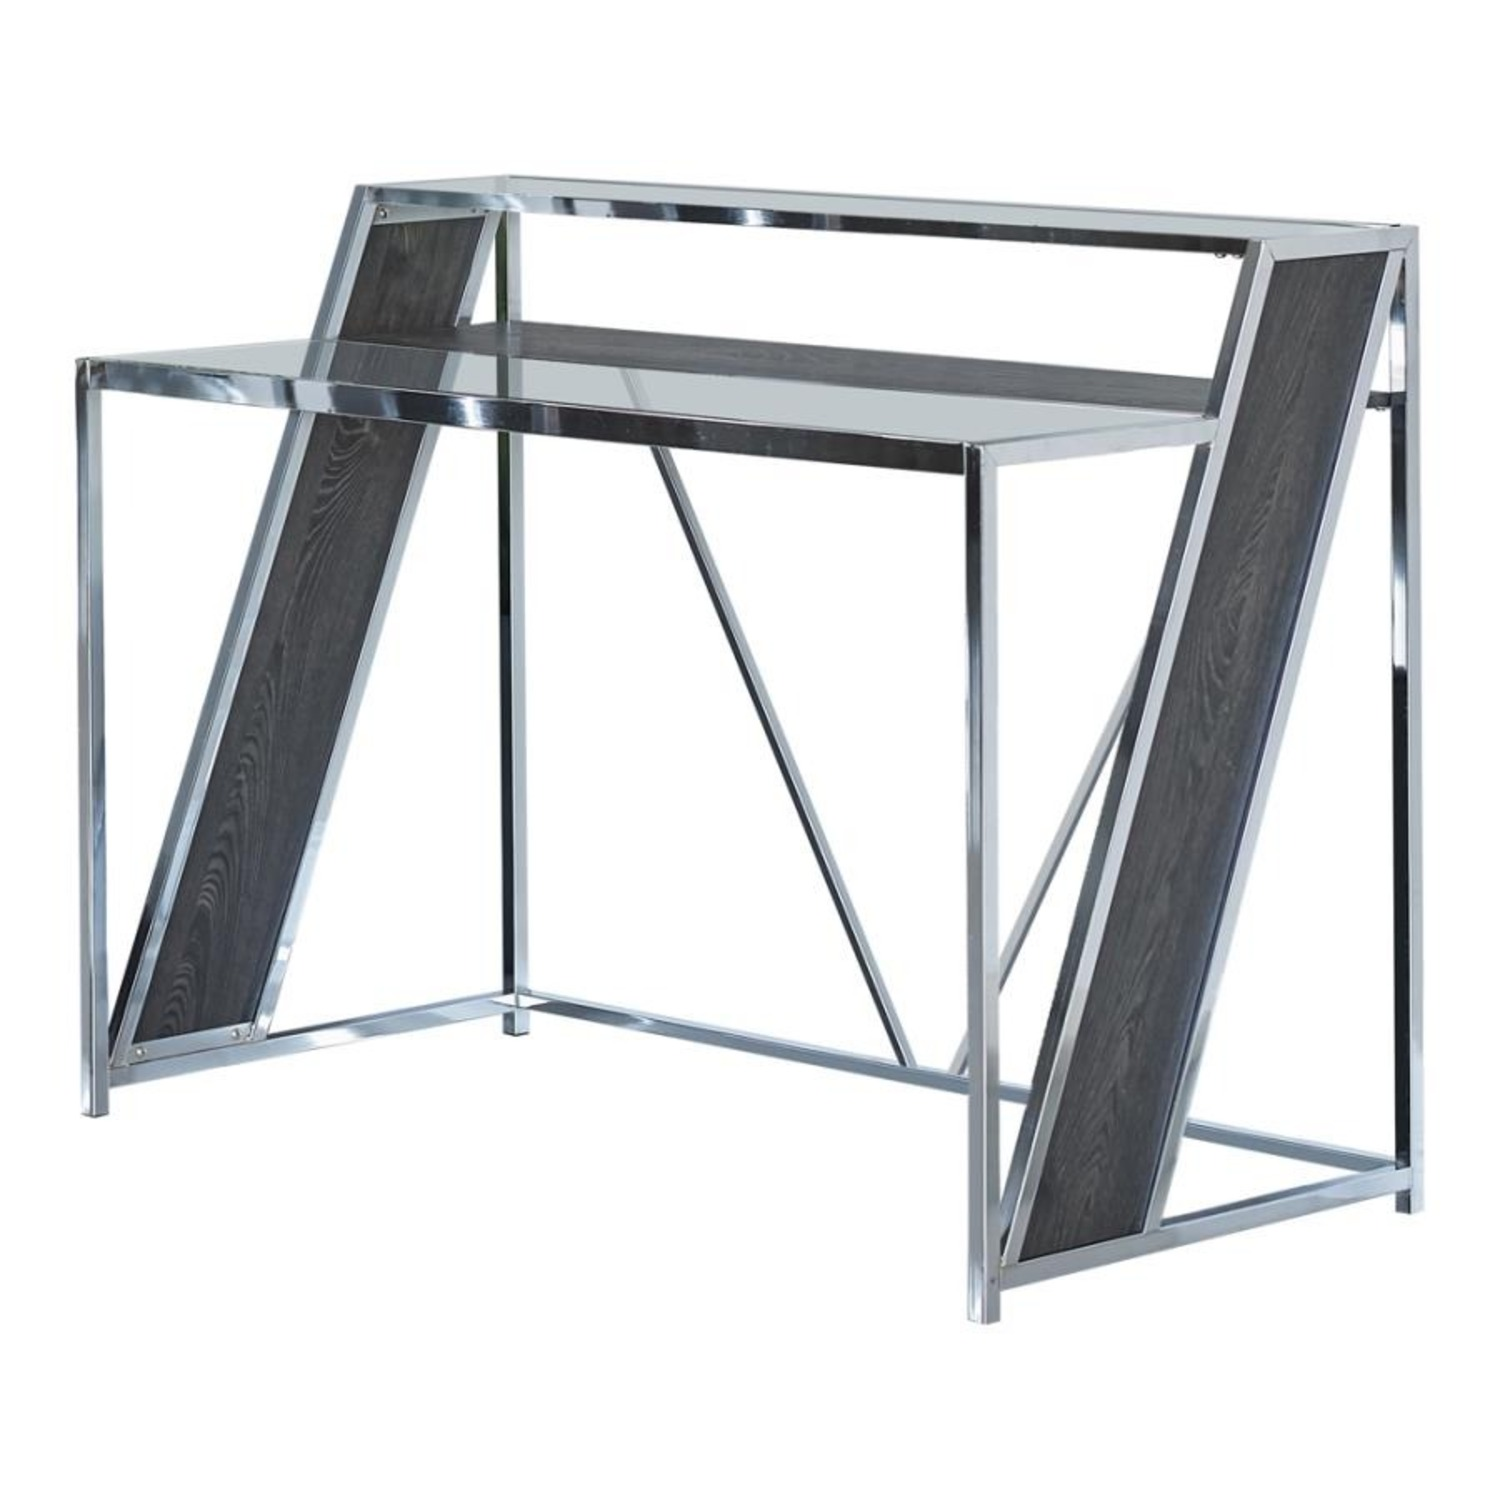 Writing Desk In Chrome W/ Clear Tempered Glass  - image-0